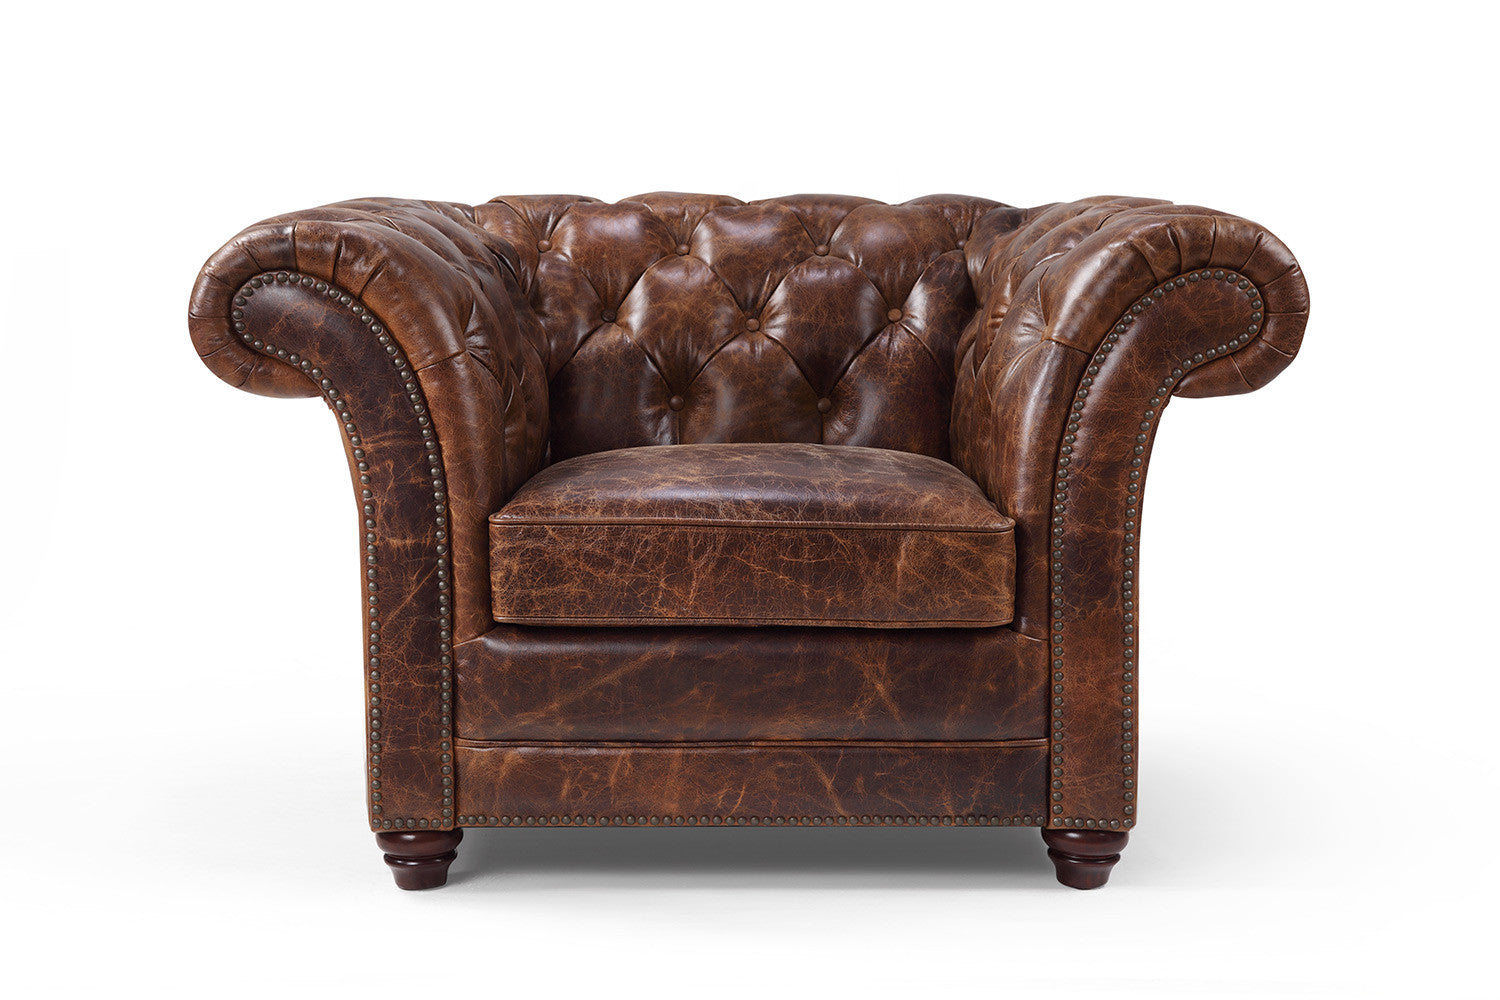 The Westminster Chesterfield Leather Chair | Rose and Moore